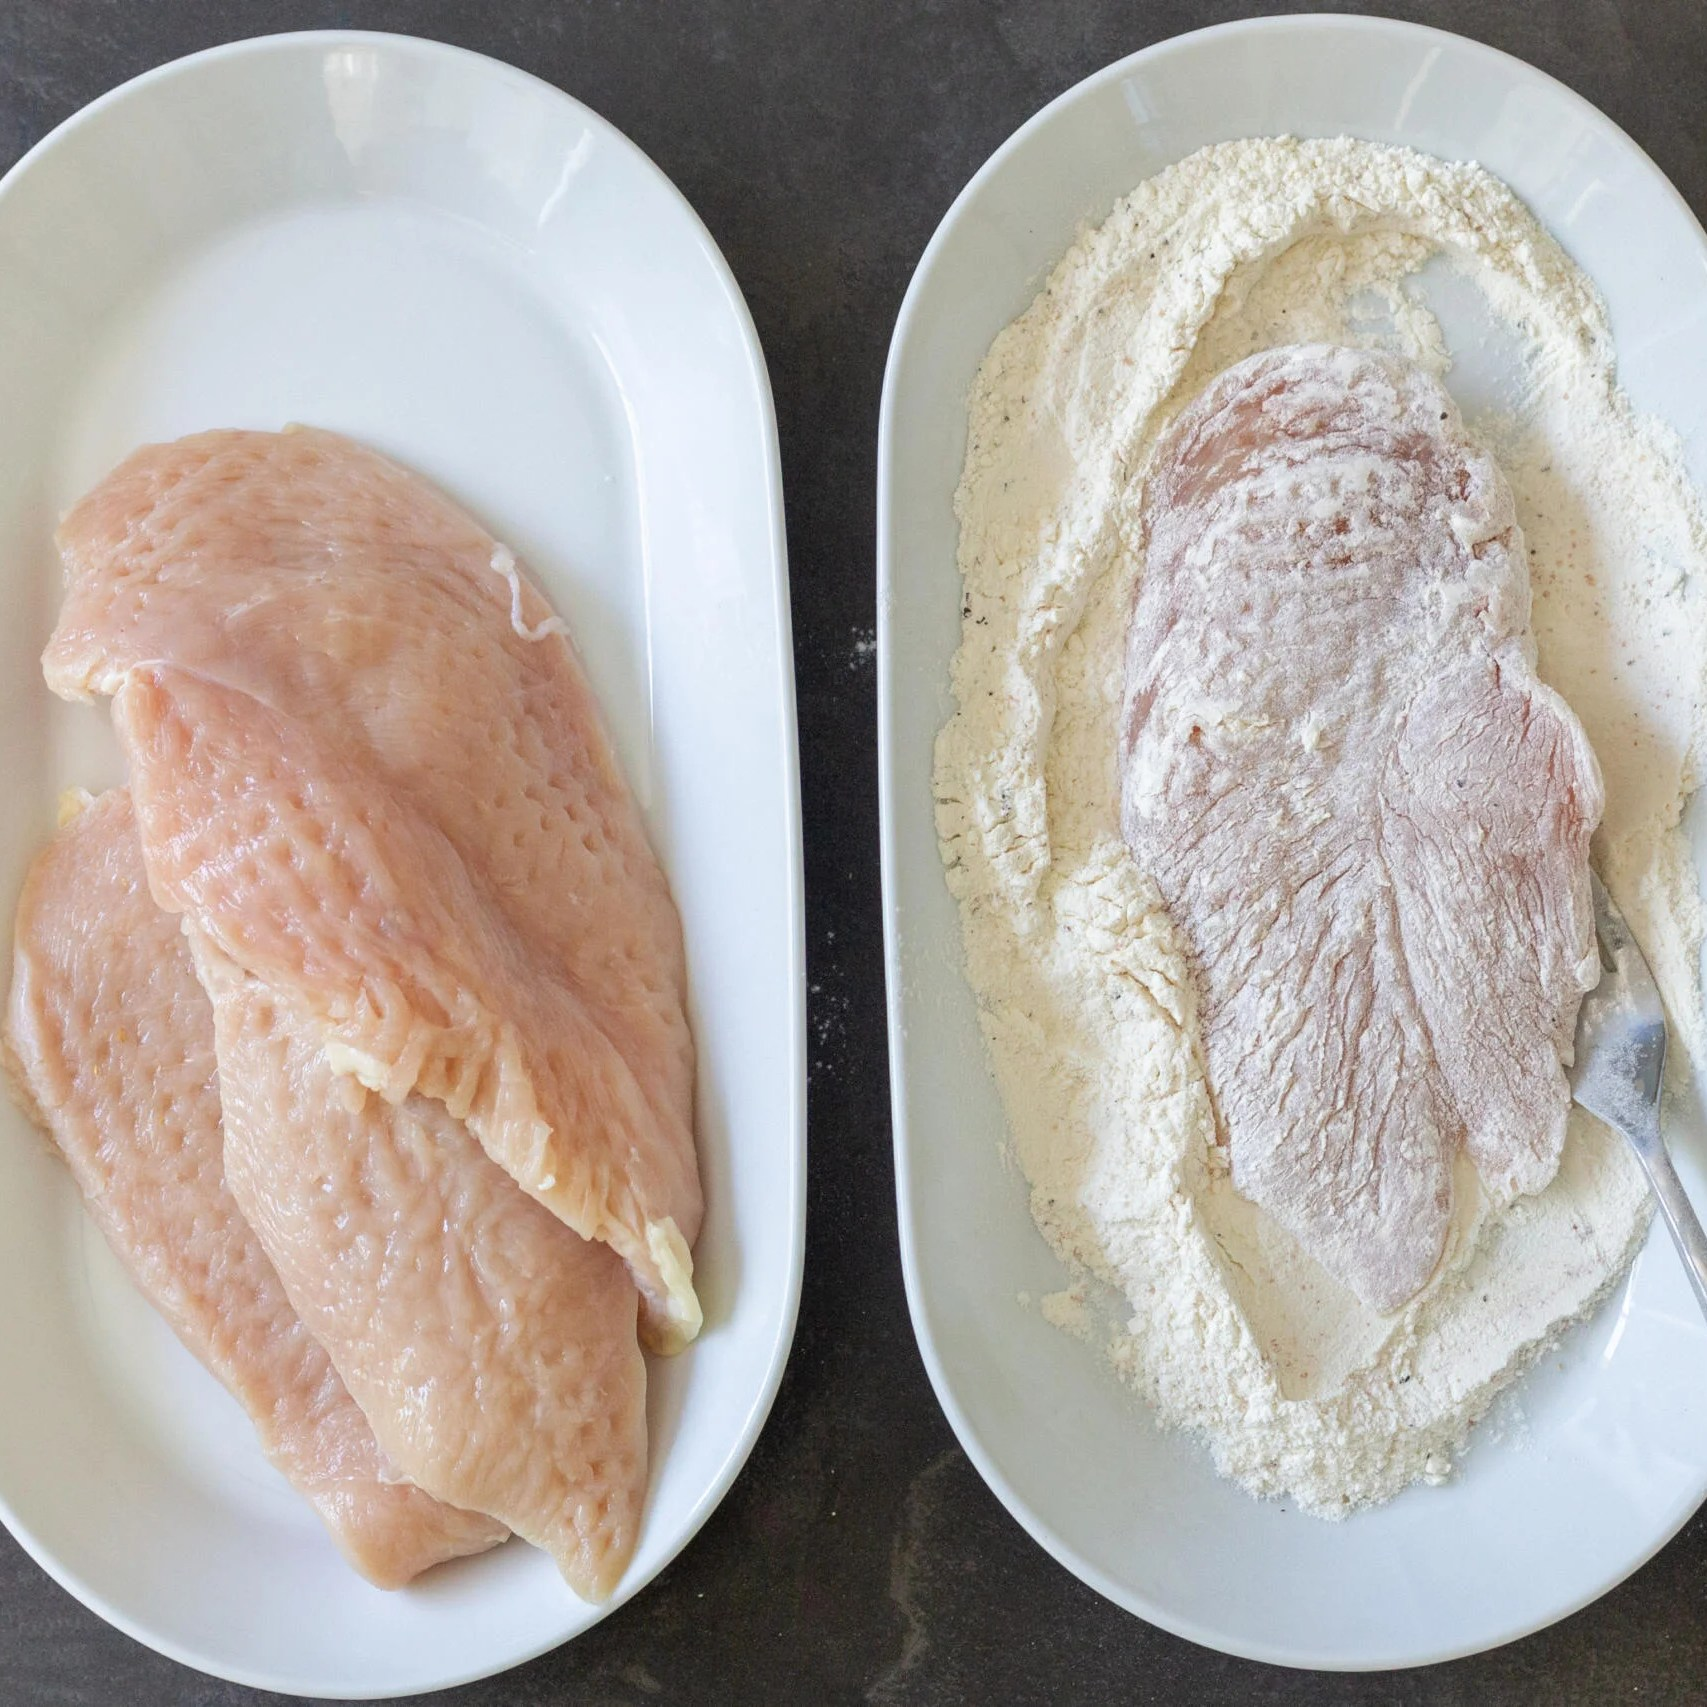 marinated chicken and seasoned flour for coating